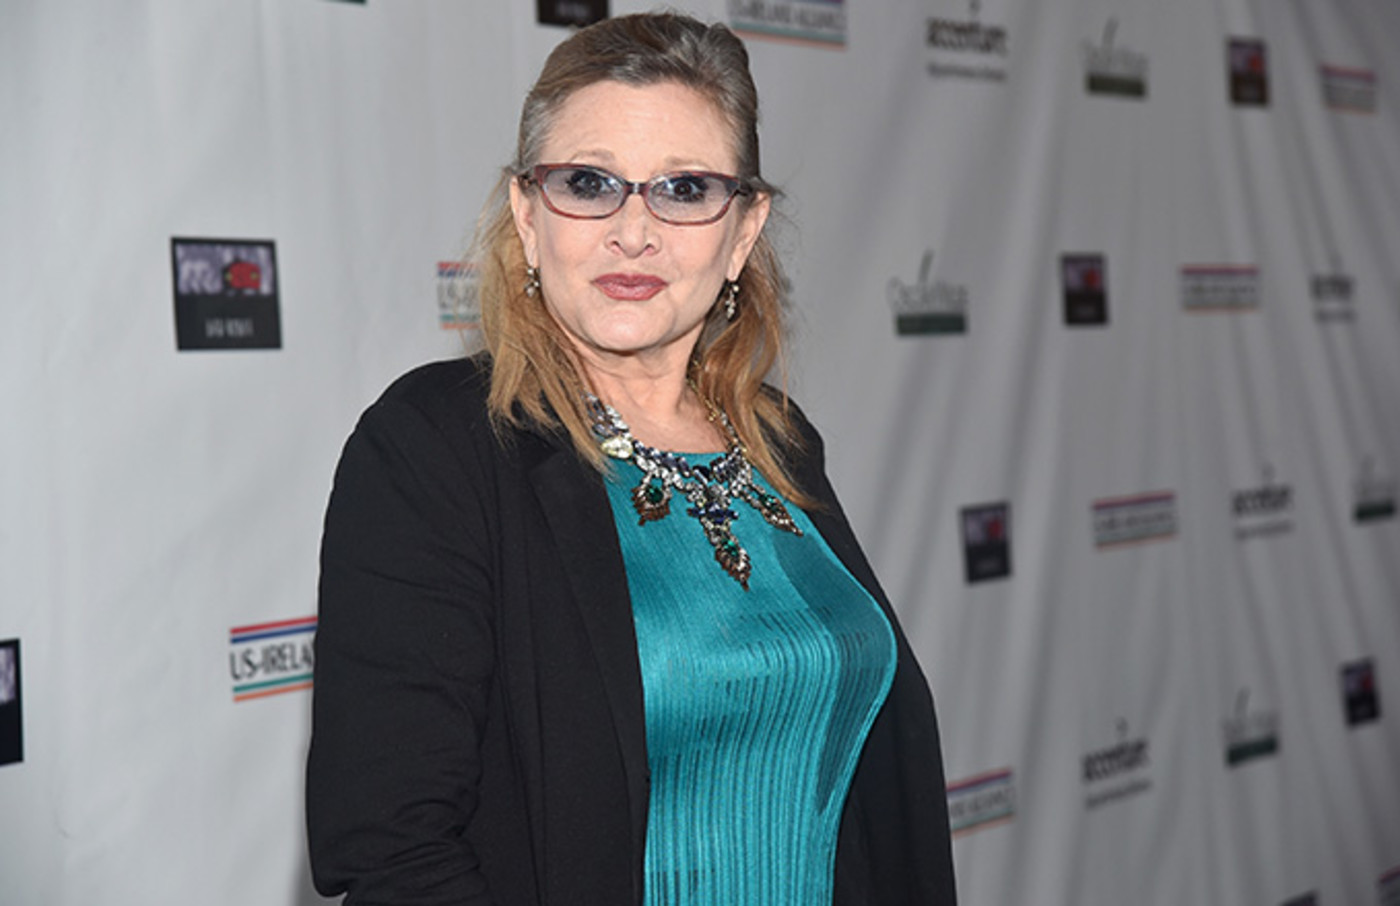 This is a photo of Carrie Fisher.